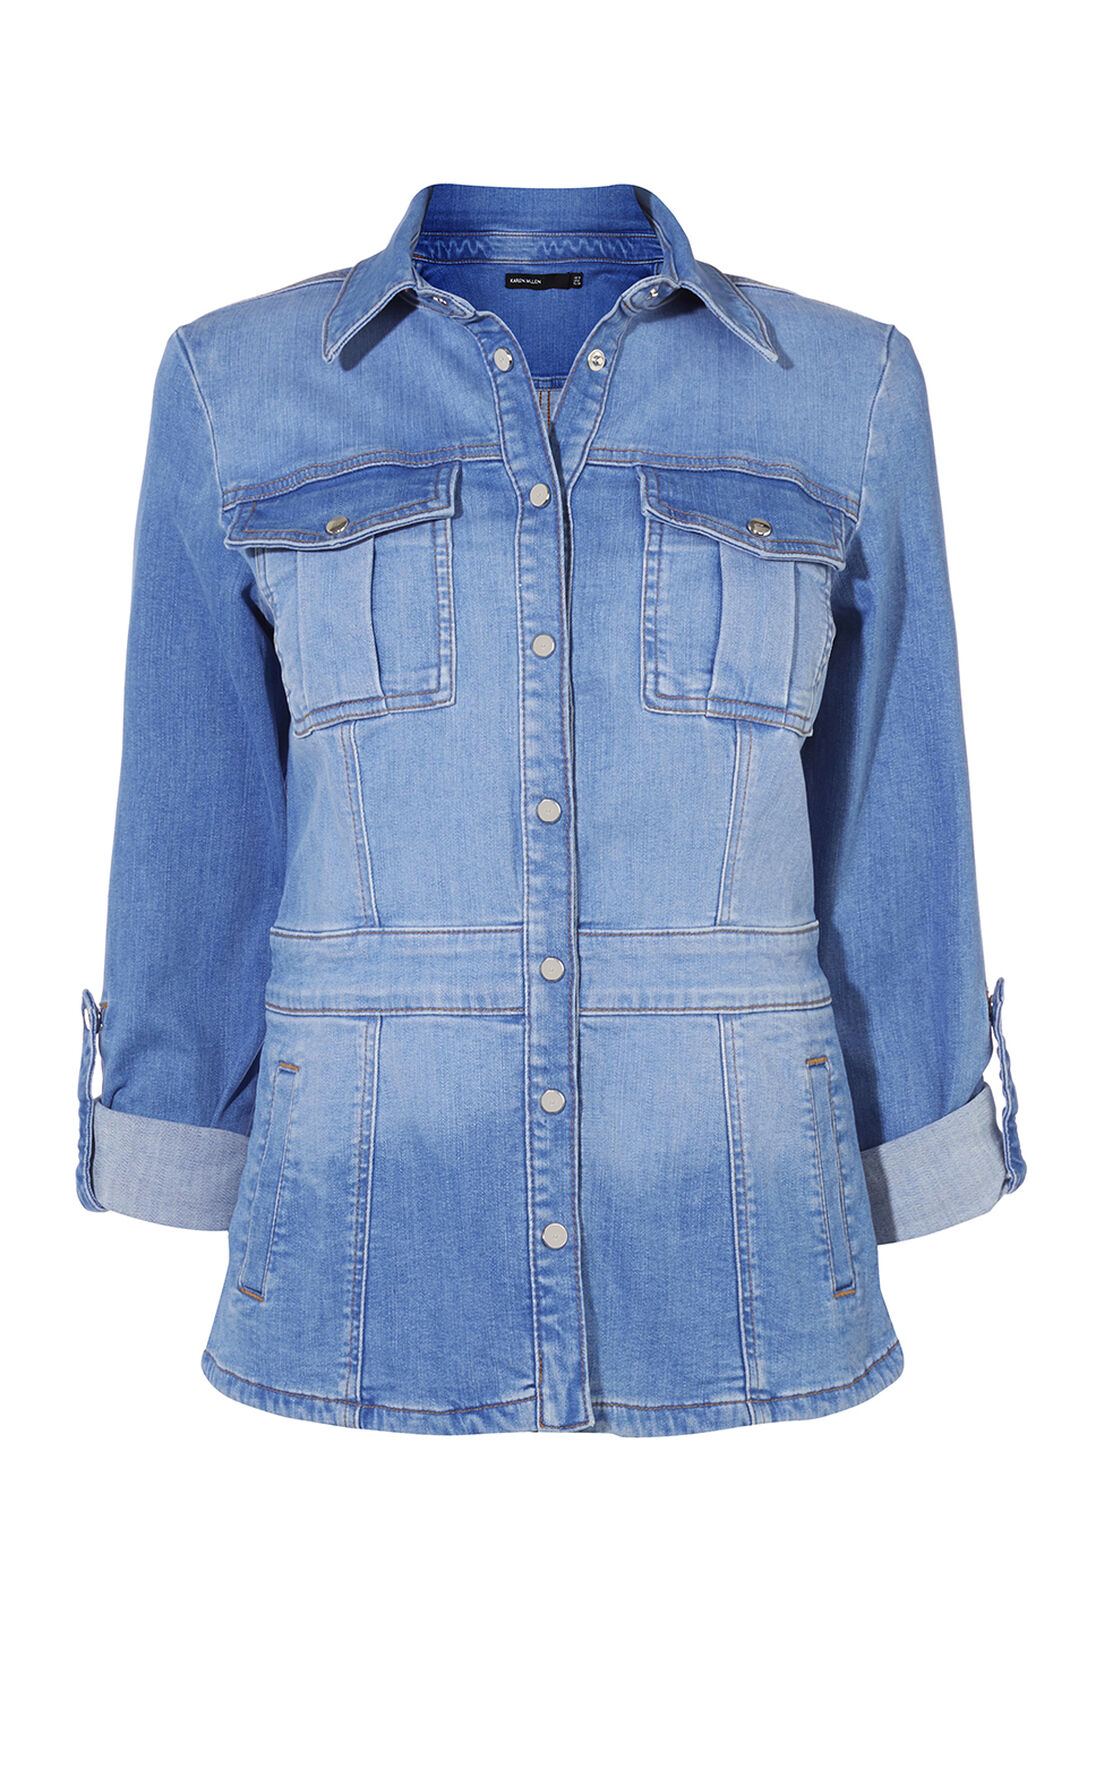 Karen Millen, DENIM SHIRT JACKET Denim 0